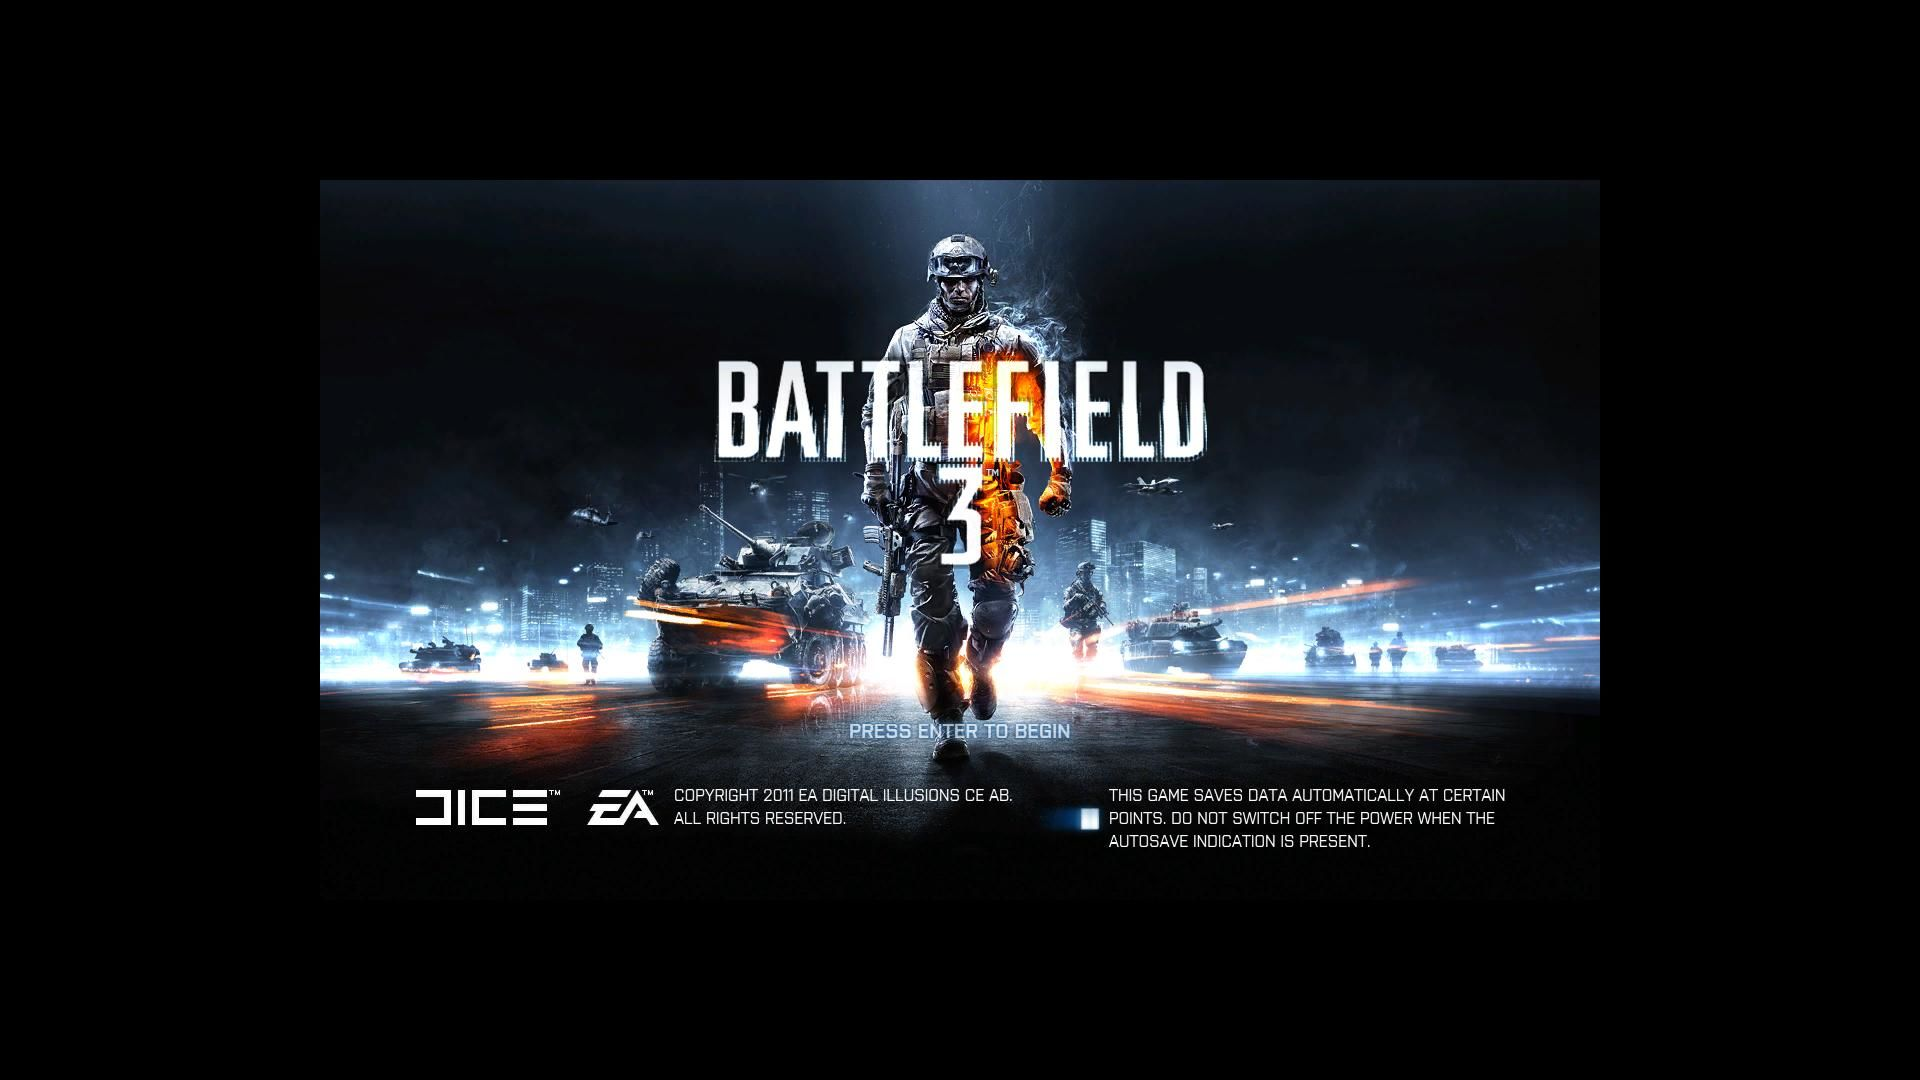 Battlefield 3 Windows Title screen